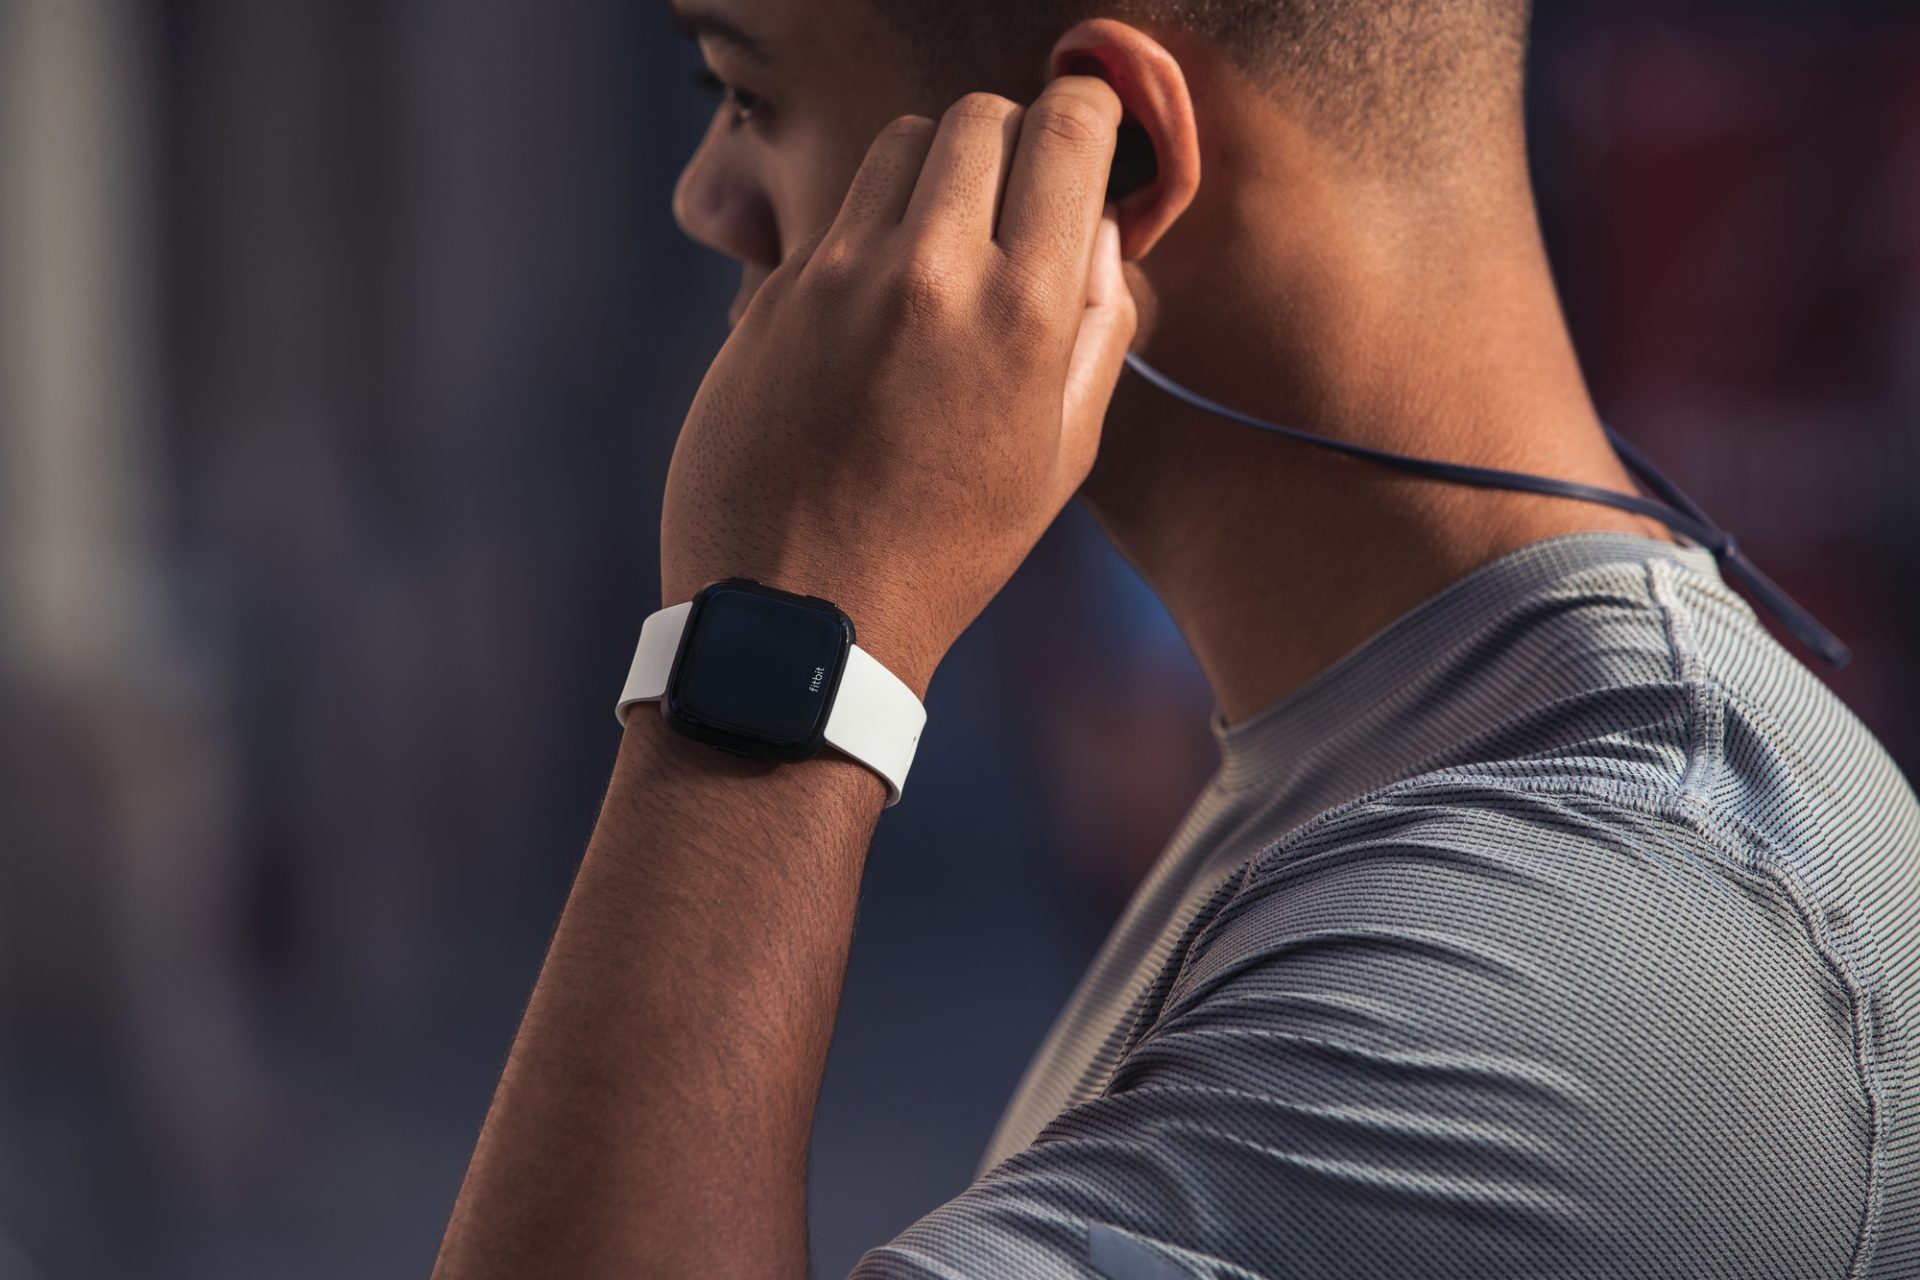 The new Fitbit Versa is the healthiest wearable for